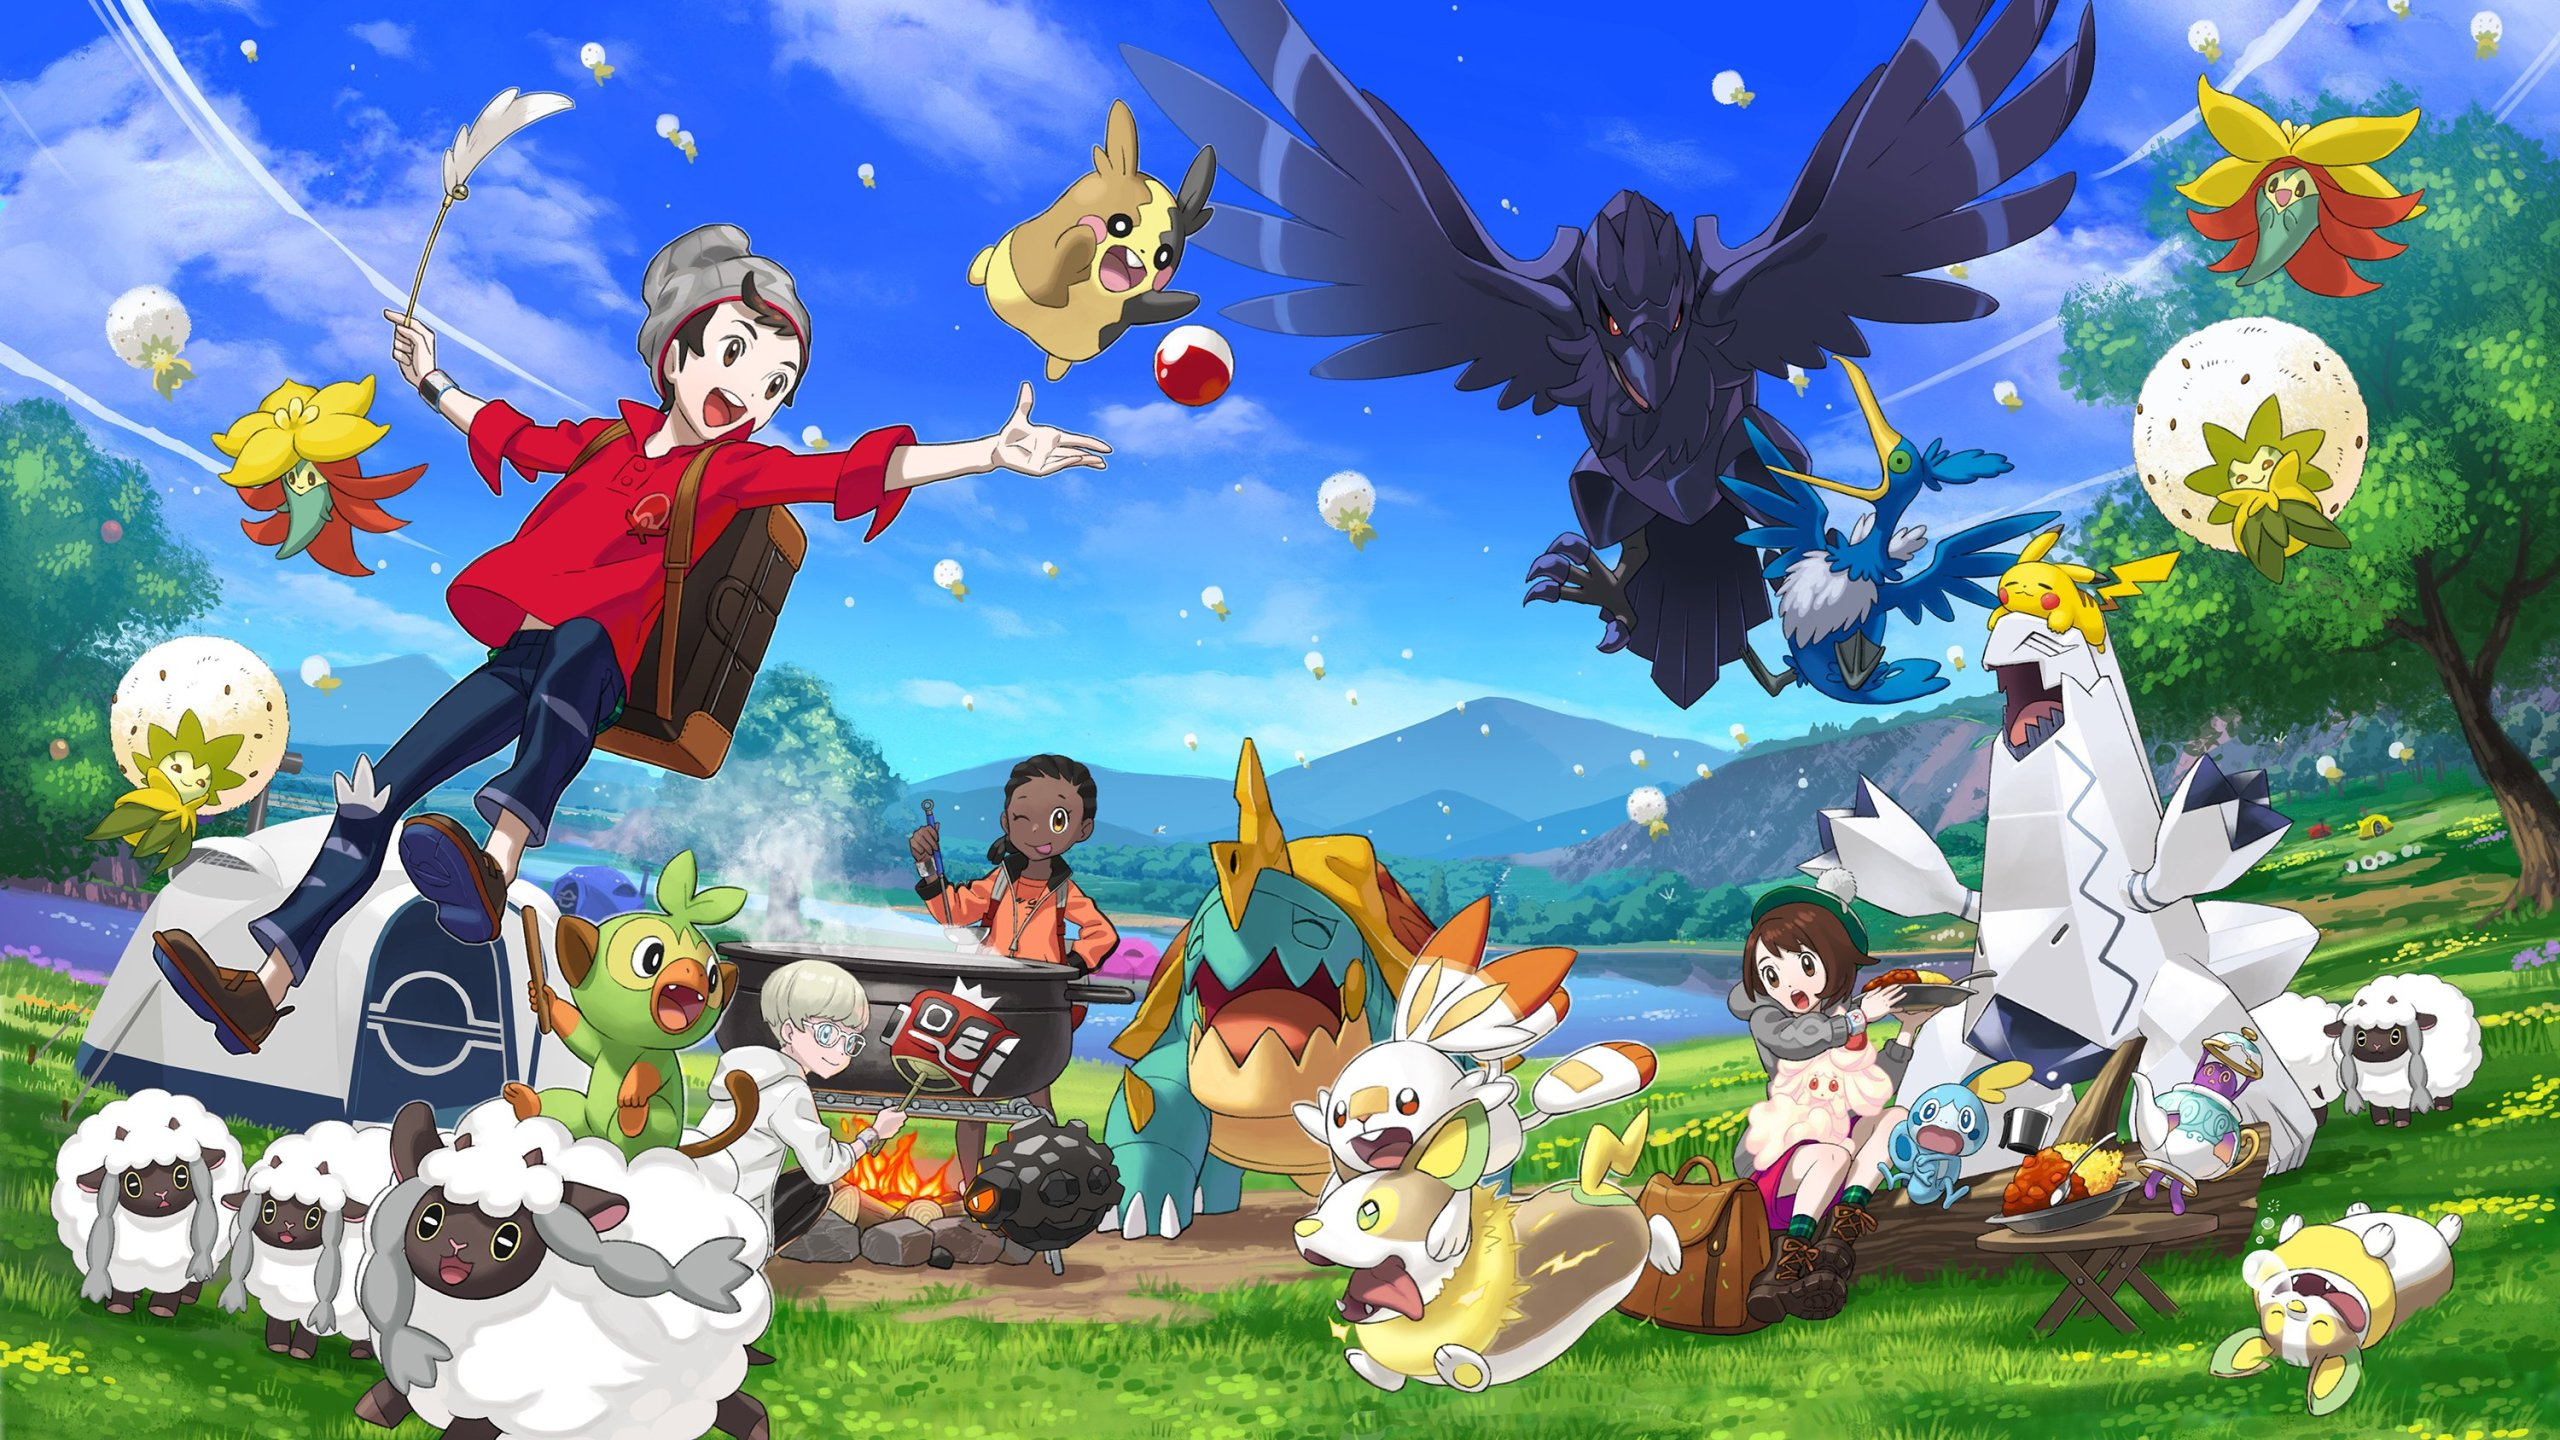 More info about Pokemon Sword and Shield's expansions is coming tomorrow morning screenshot